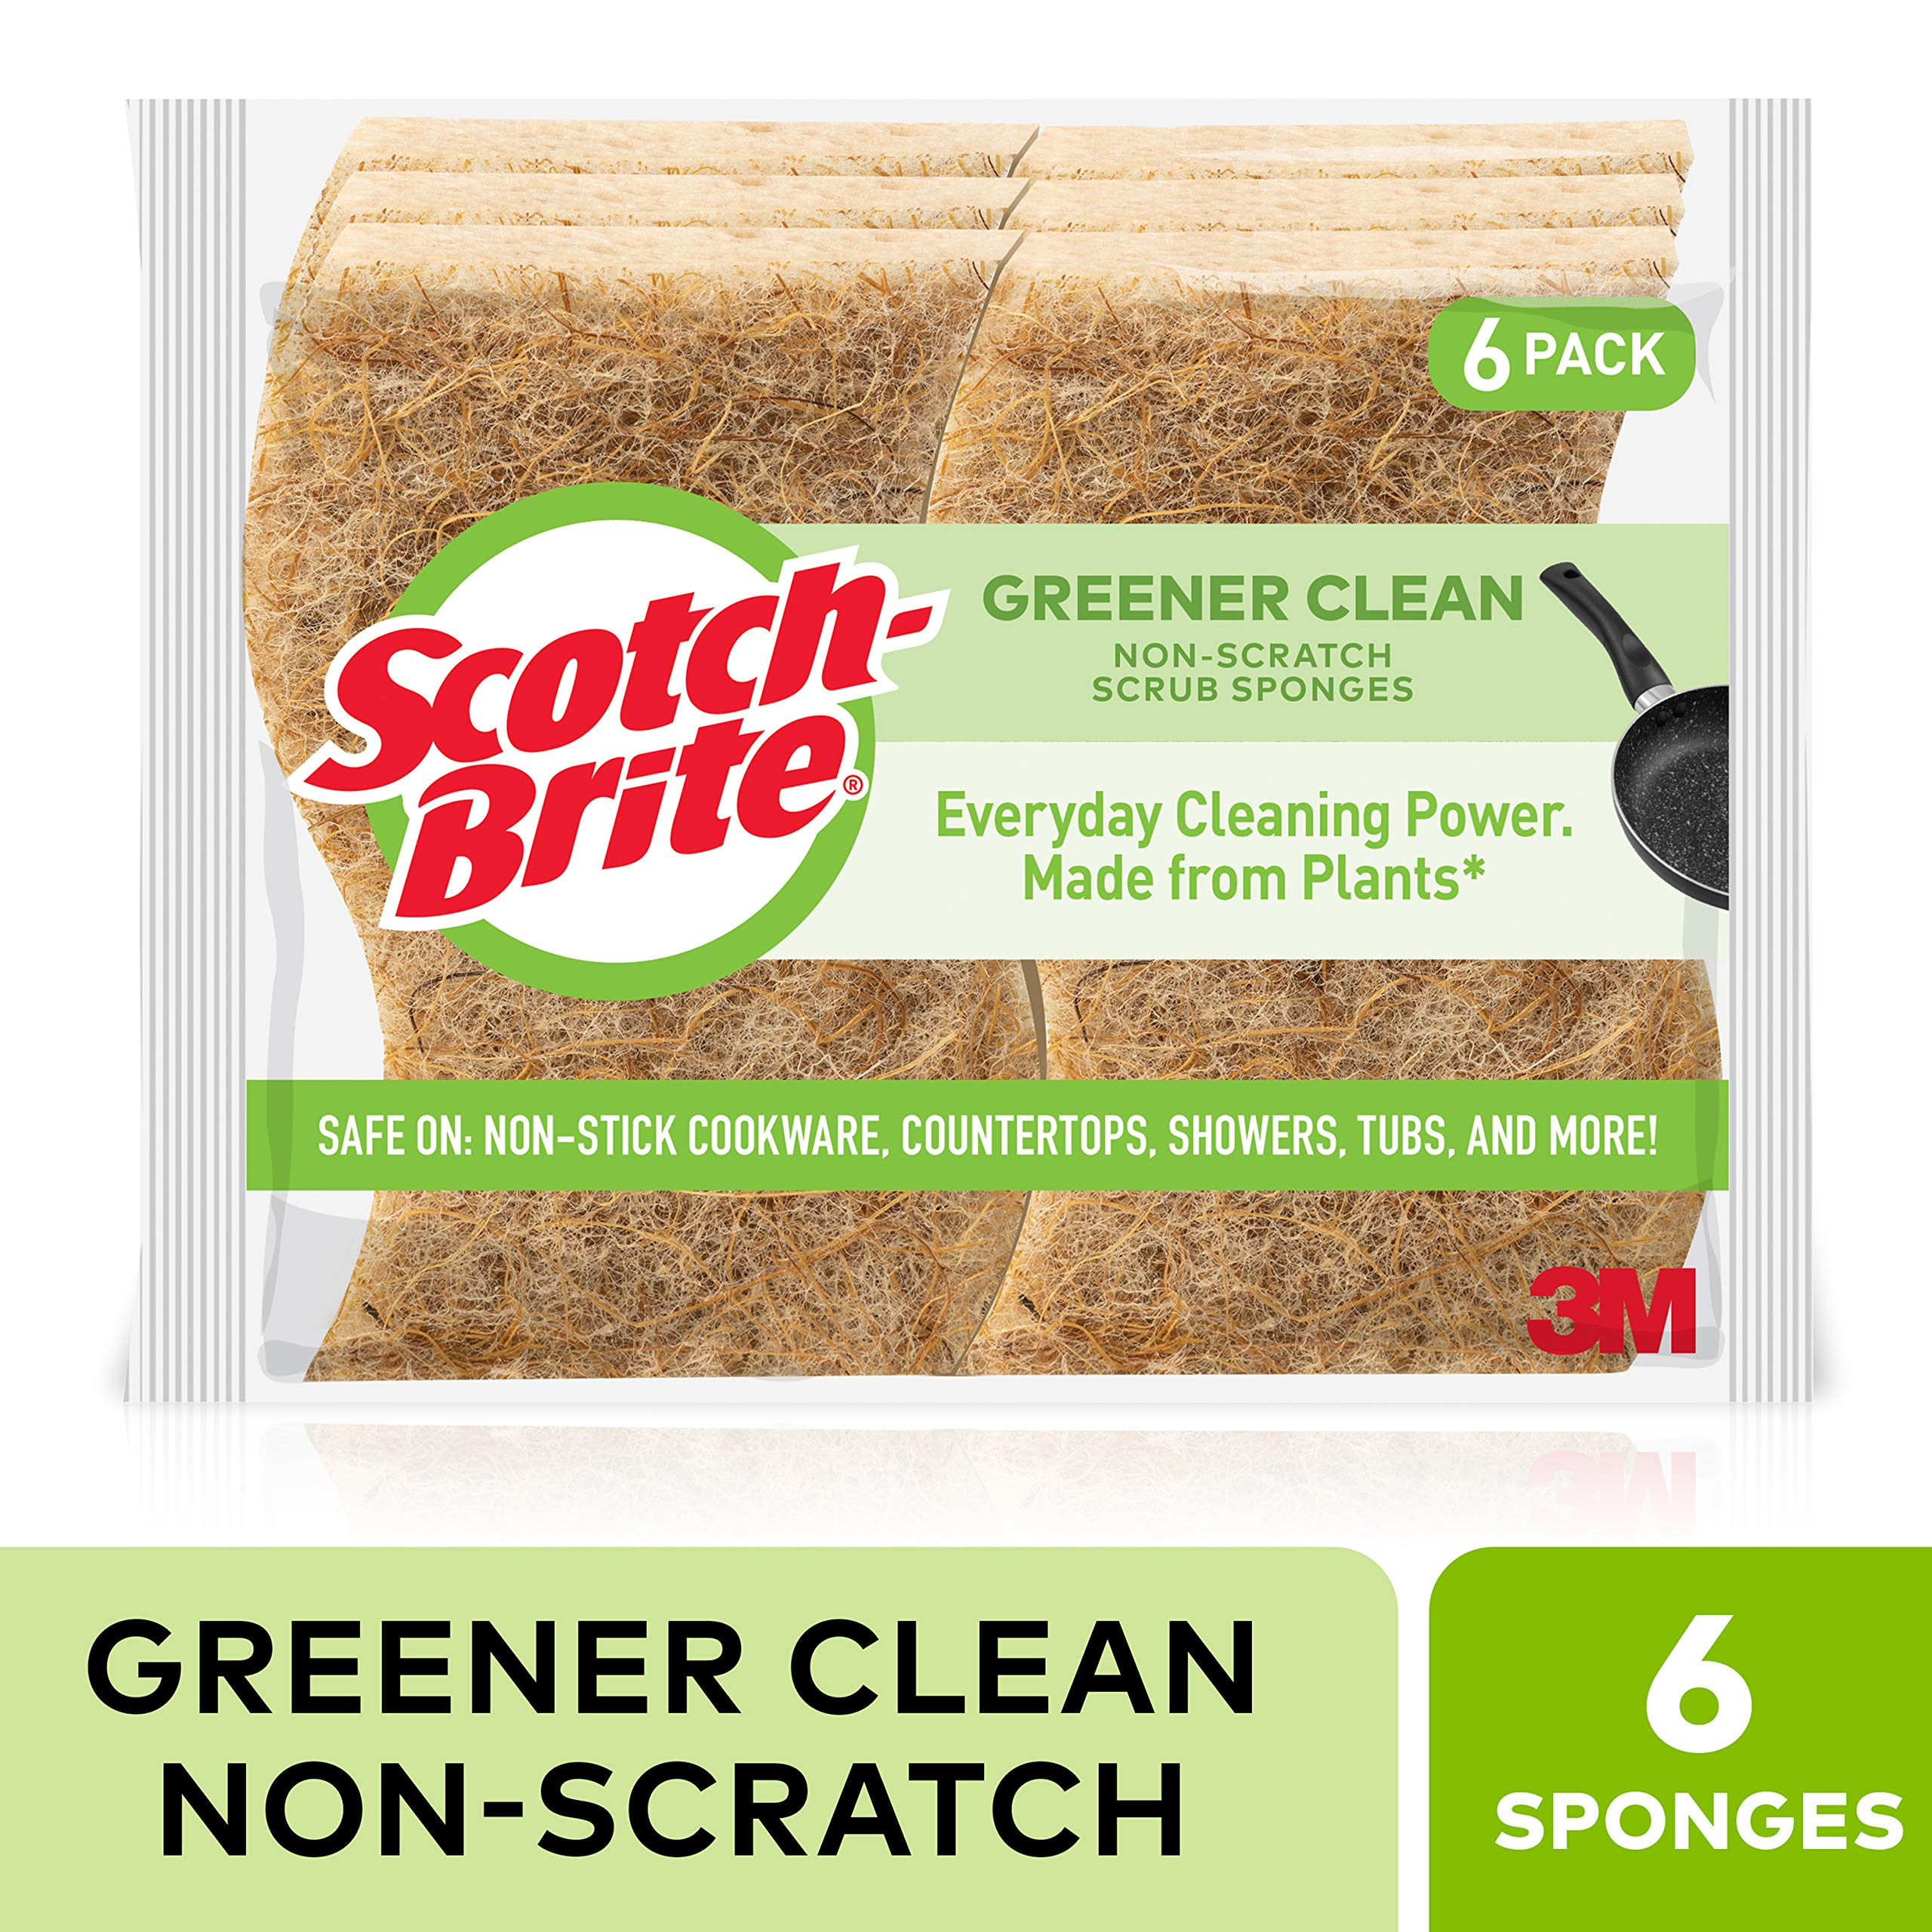 Scotch-Brite Greener Clean Non-Scratch Scrub Sponges, Made from Plants, Cleans Fast without Scratching, Stands Up to Stuck-on Grime, 6 Scrub Sponges